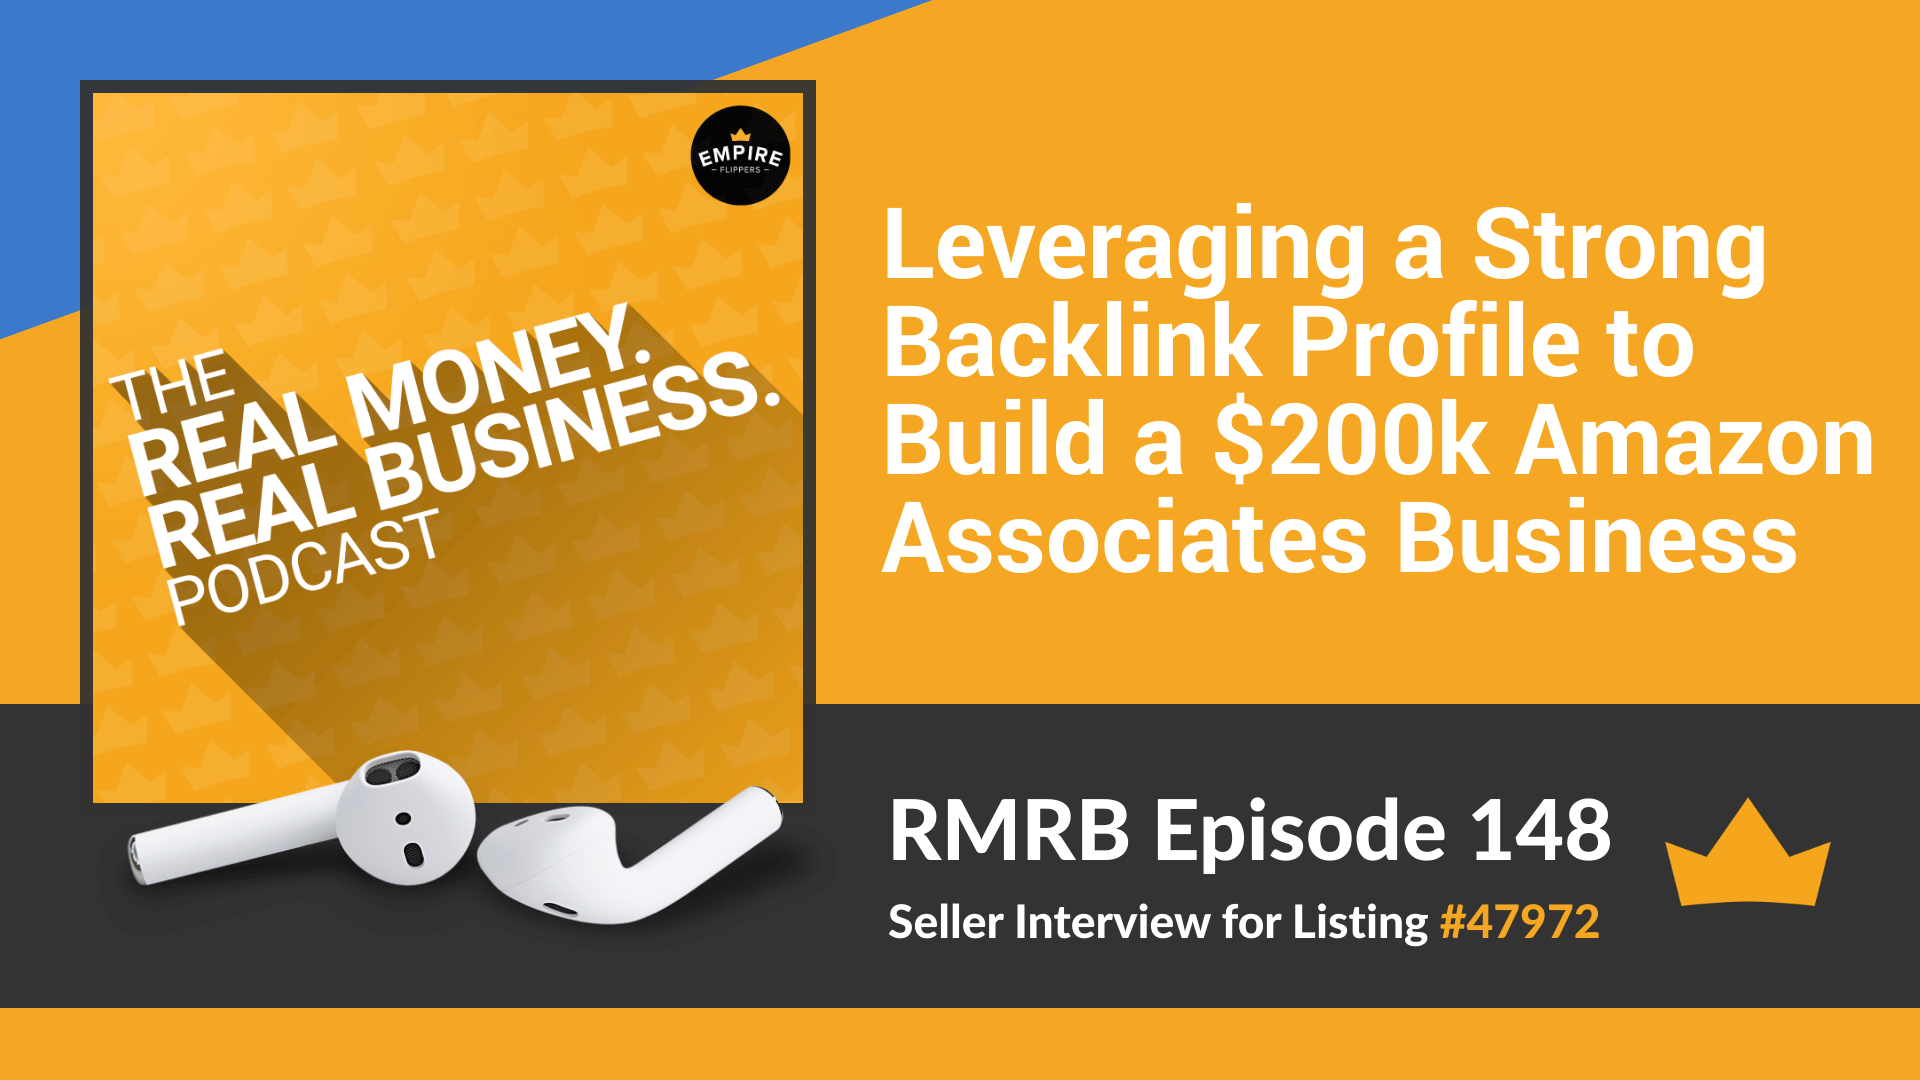 RMRB 148 - Leveraging a Strong Backlink Profile to Build a $200k Amazon Associates Business